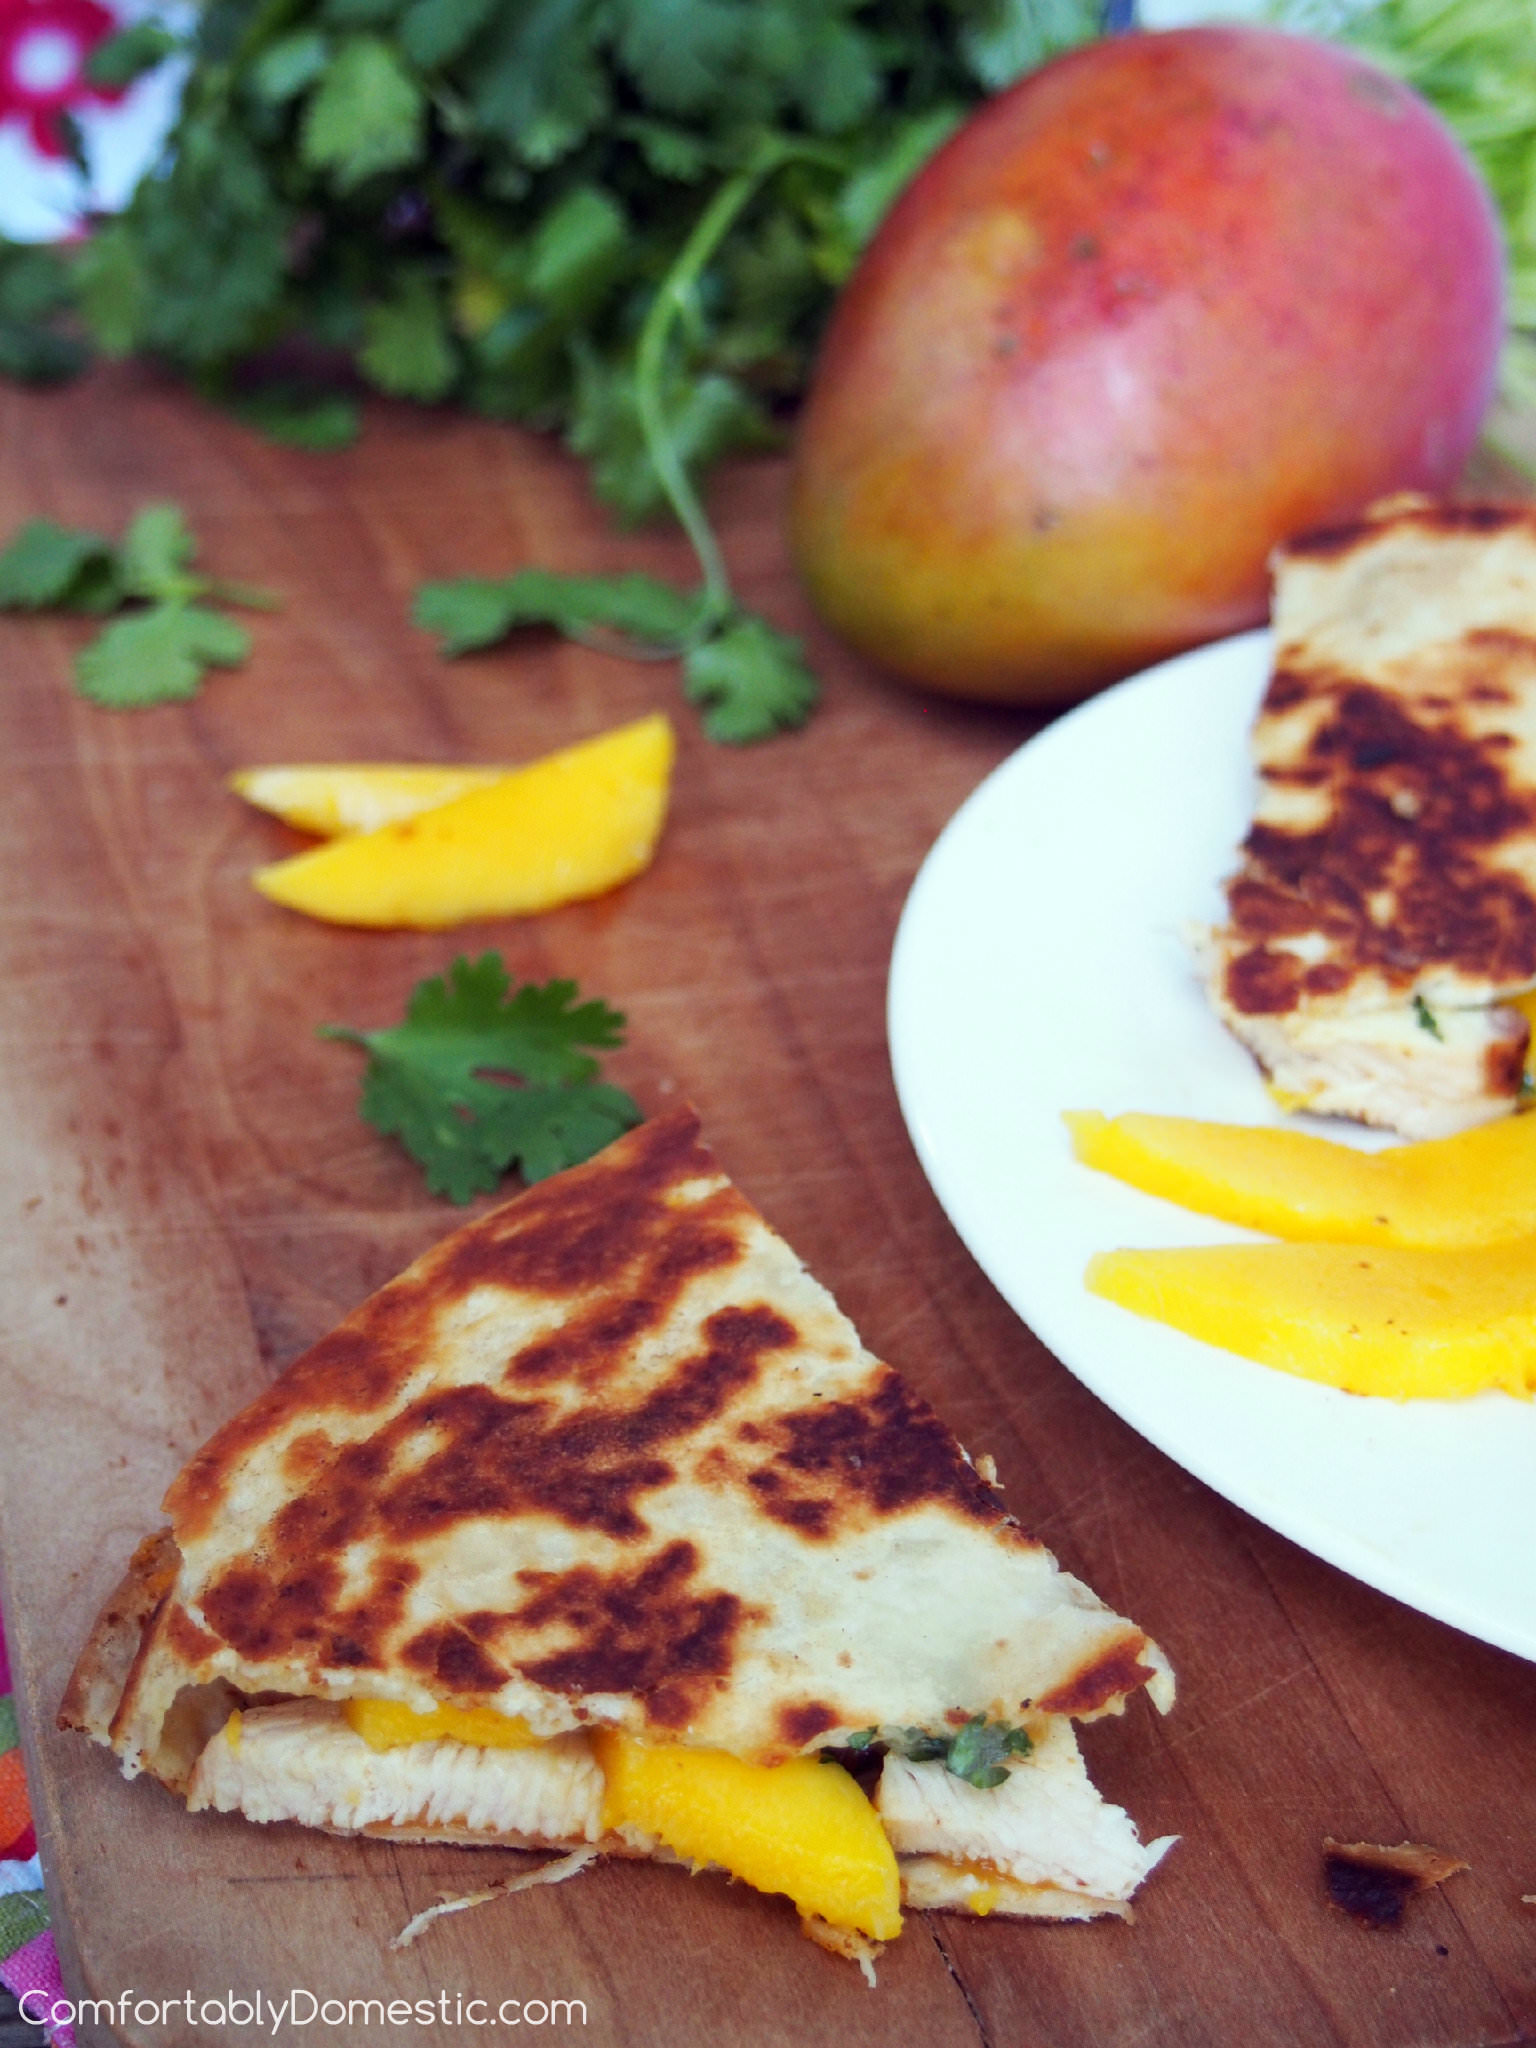 Mango chicken quesadillas start with tender grilled chicken, fresh mango slices, and creamy brie cheese. They're layered and toasted between buttery flour tortillas. They are a great use for leftover chicken, making a healthy lunch or quick snack. | ComfortablyDomestic.com